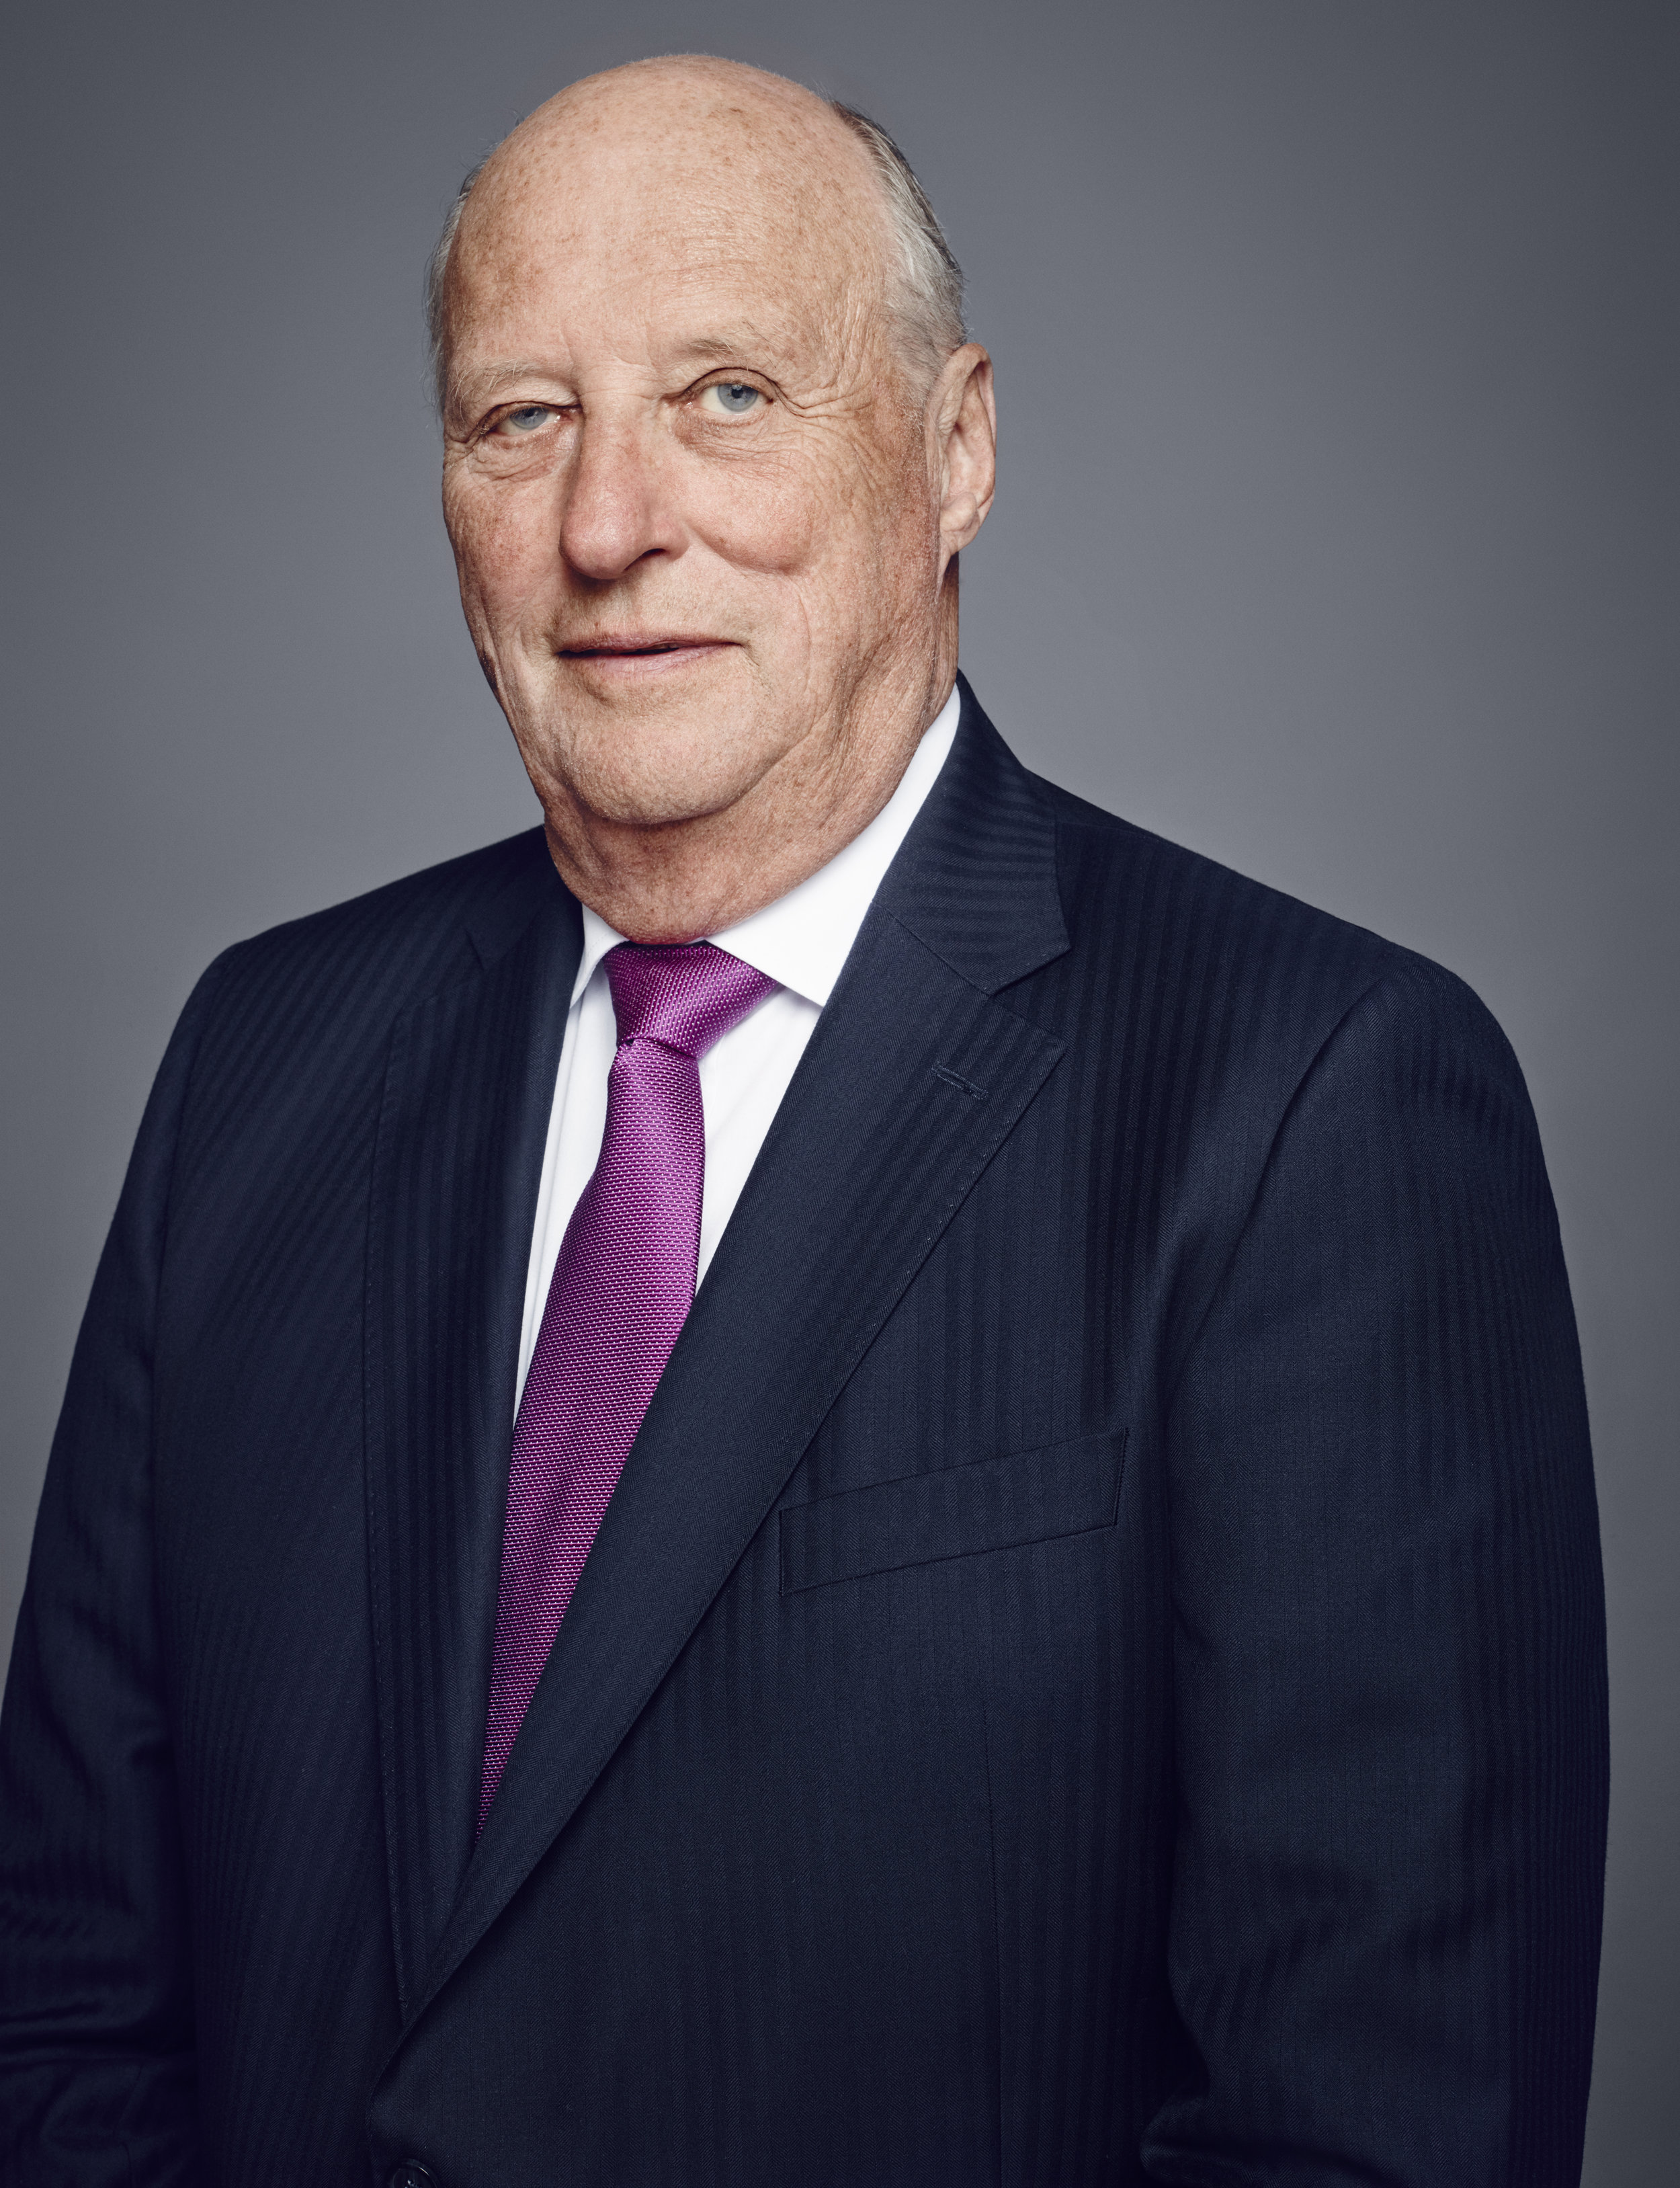 HM King Harald V of Norway